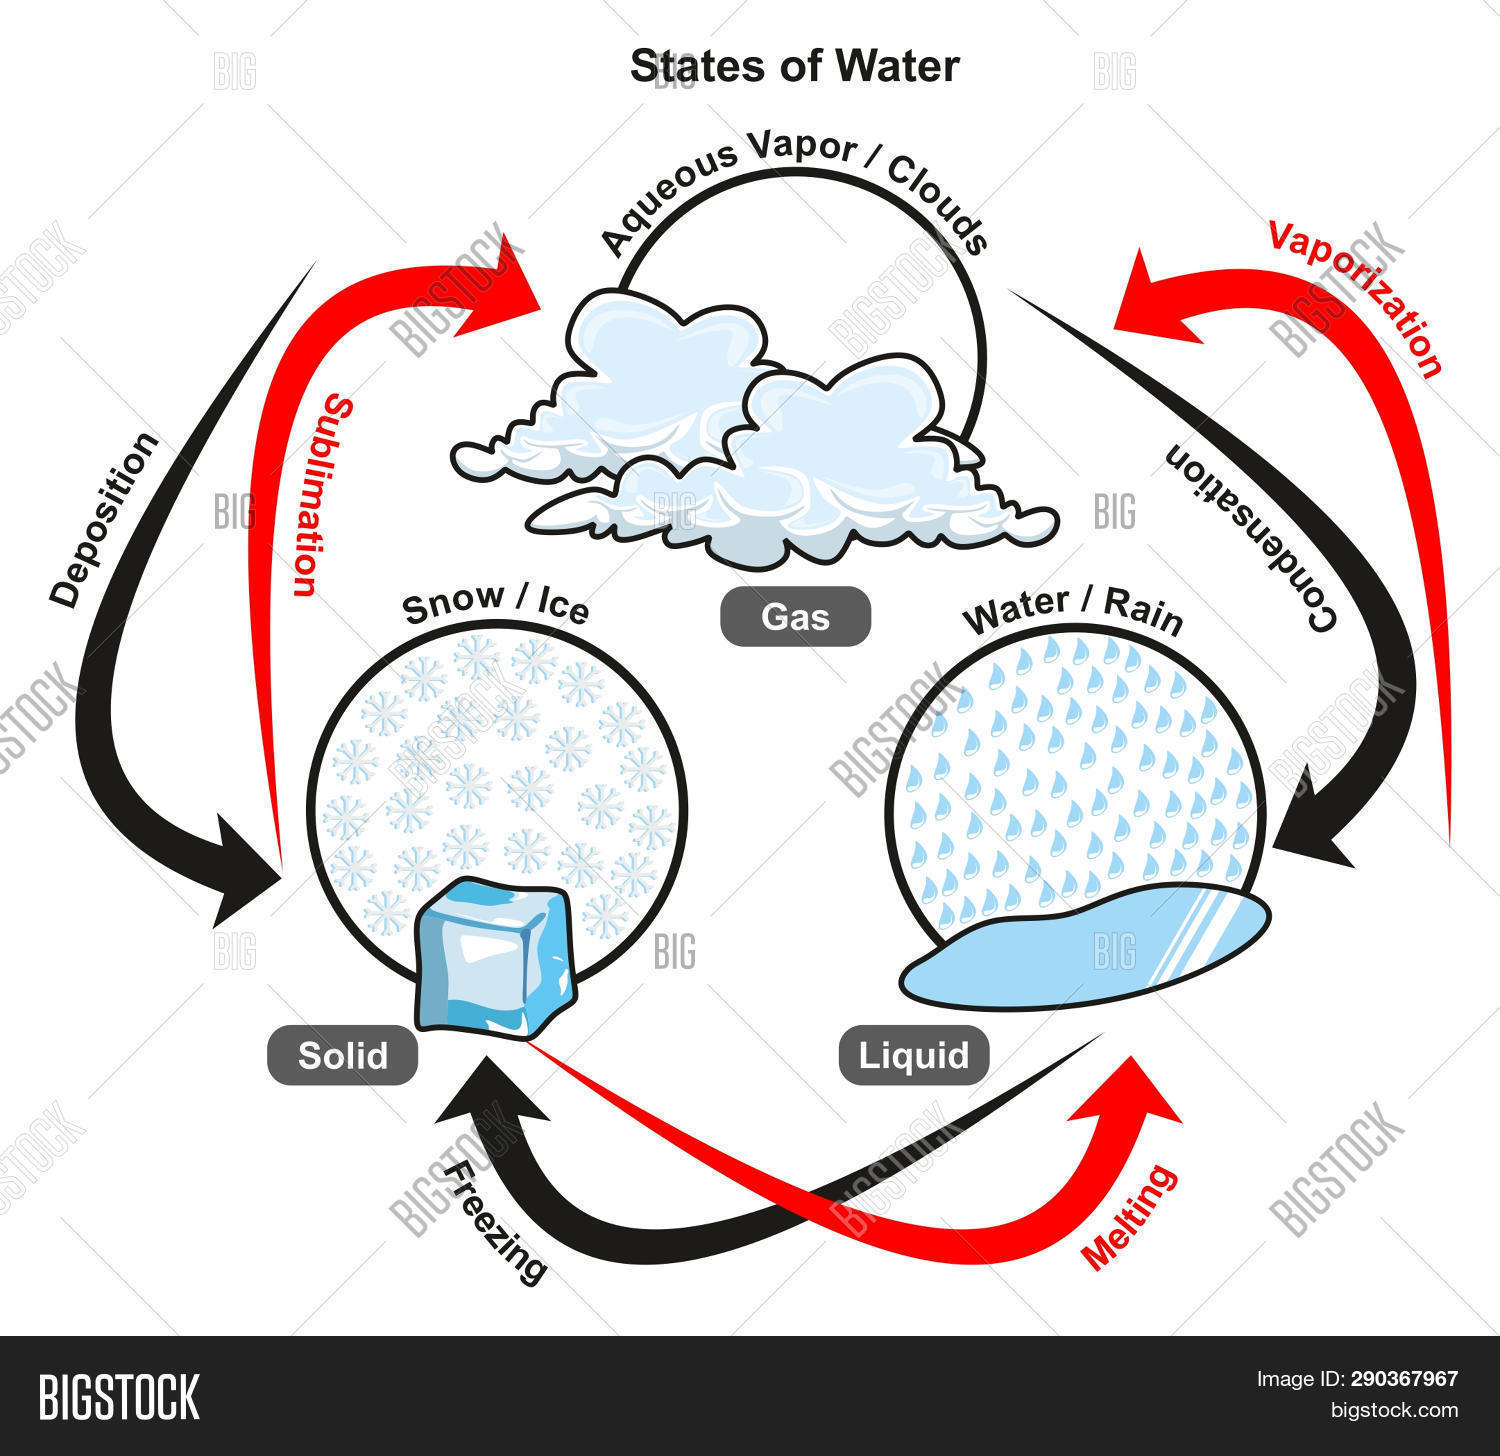 hight resolution of states of water infographic diagram including gas liquid and solid also showing all processes vaporization condensation